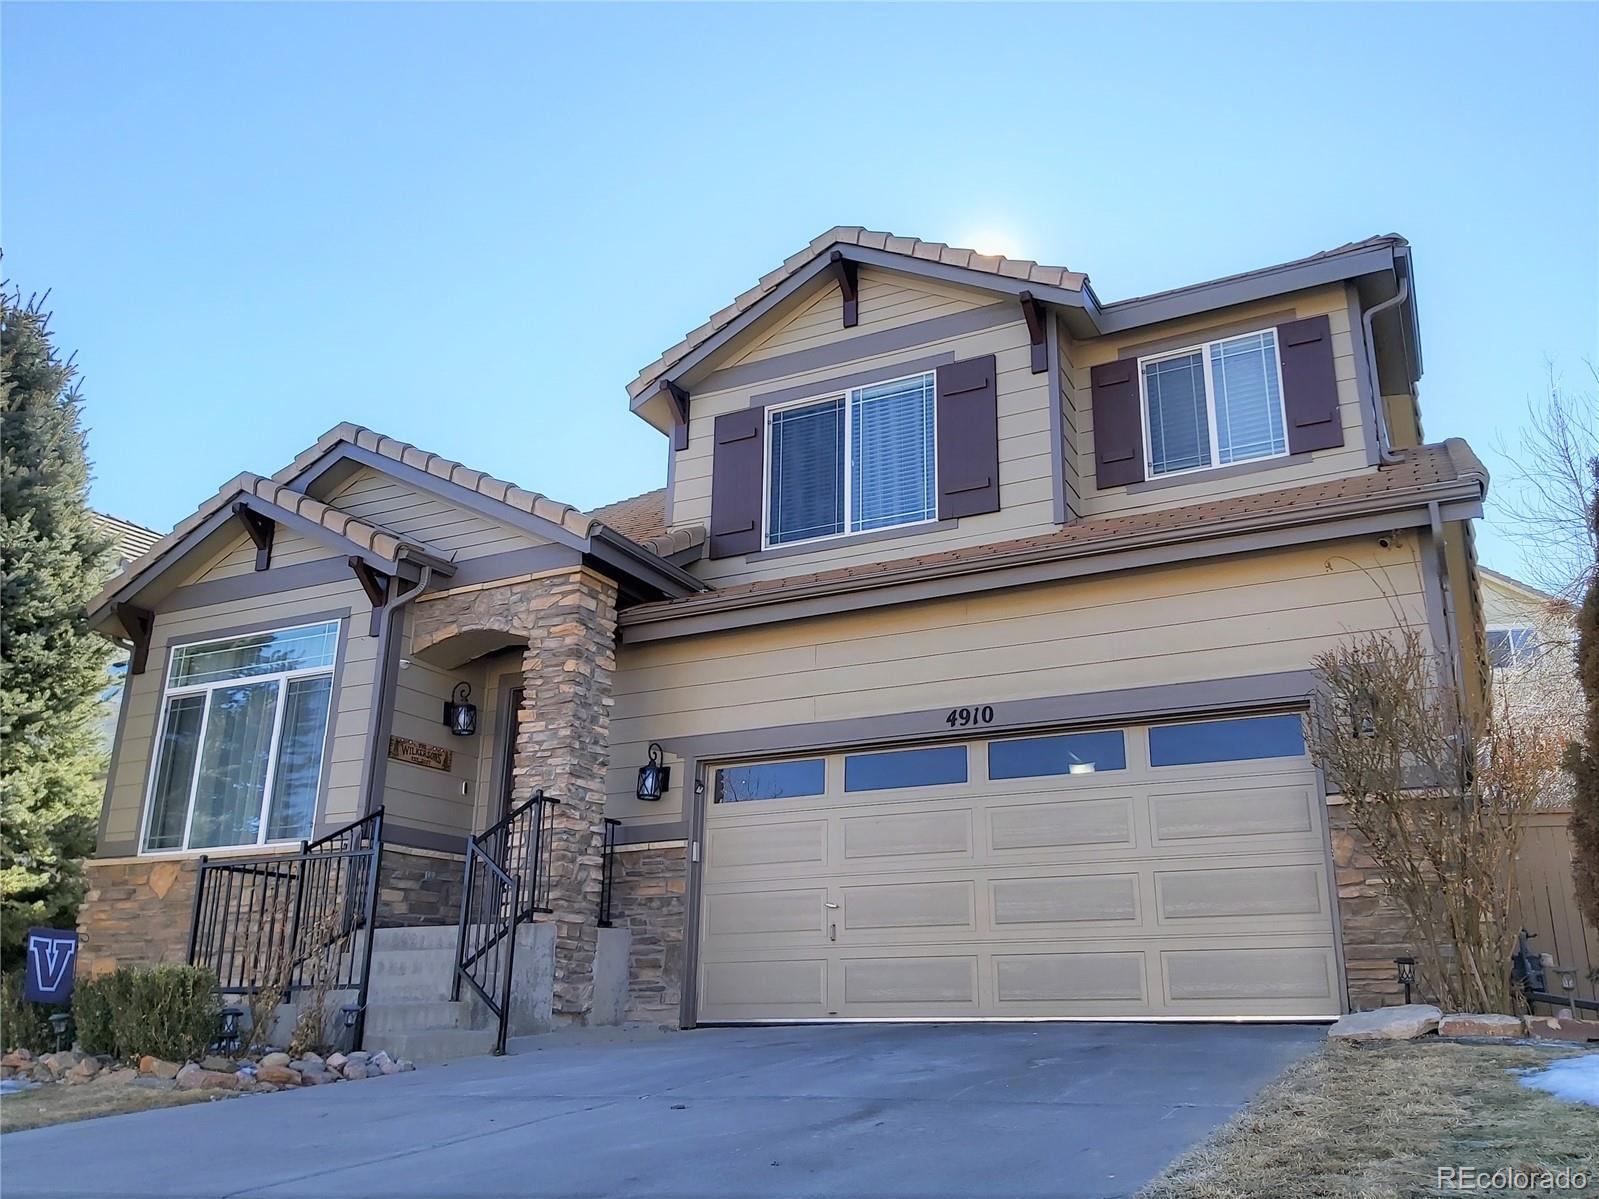 4910 Laurelglen Lane, Highlands Ranch, CO 80130 - Highlands Ranch, CO real estate listing